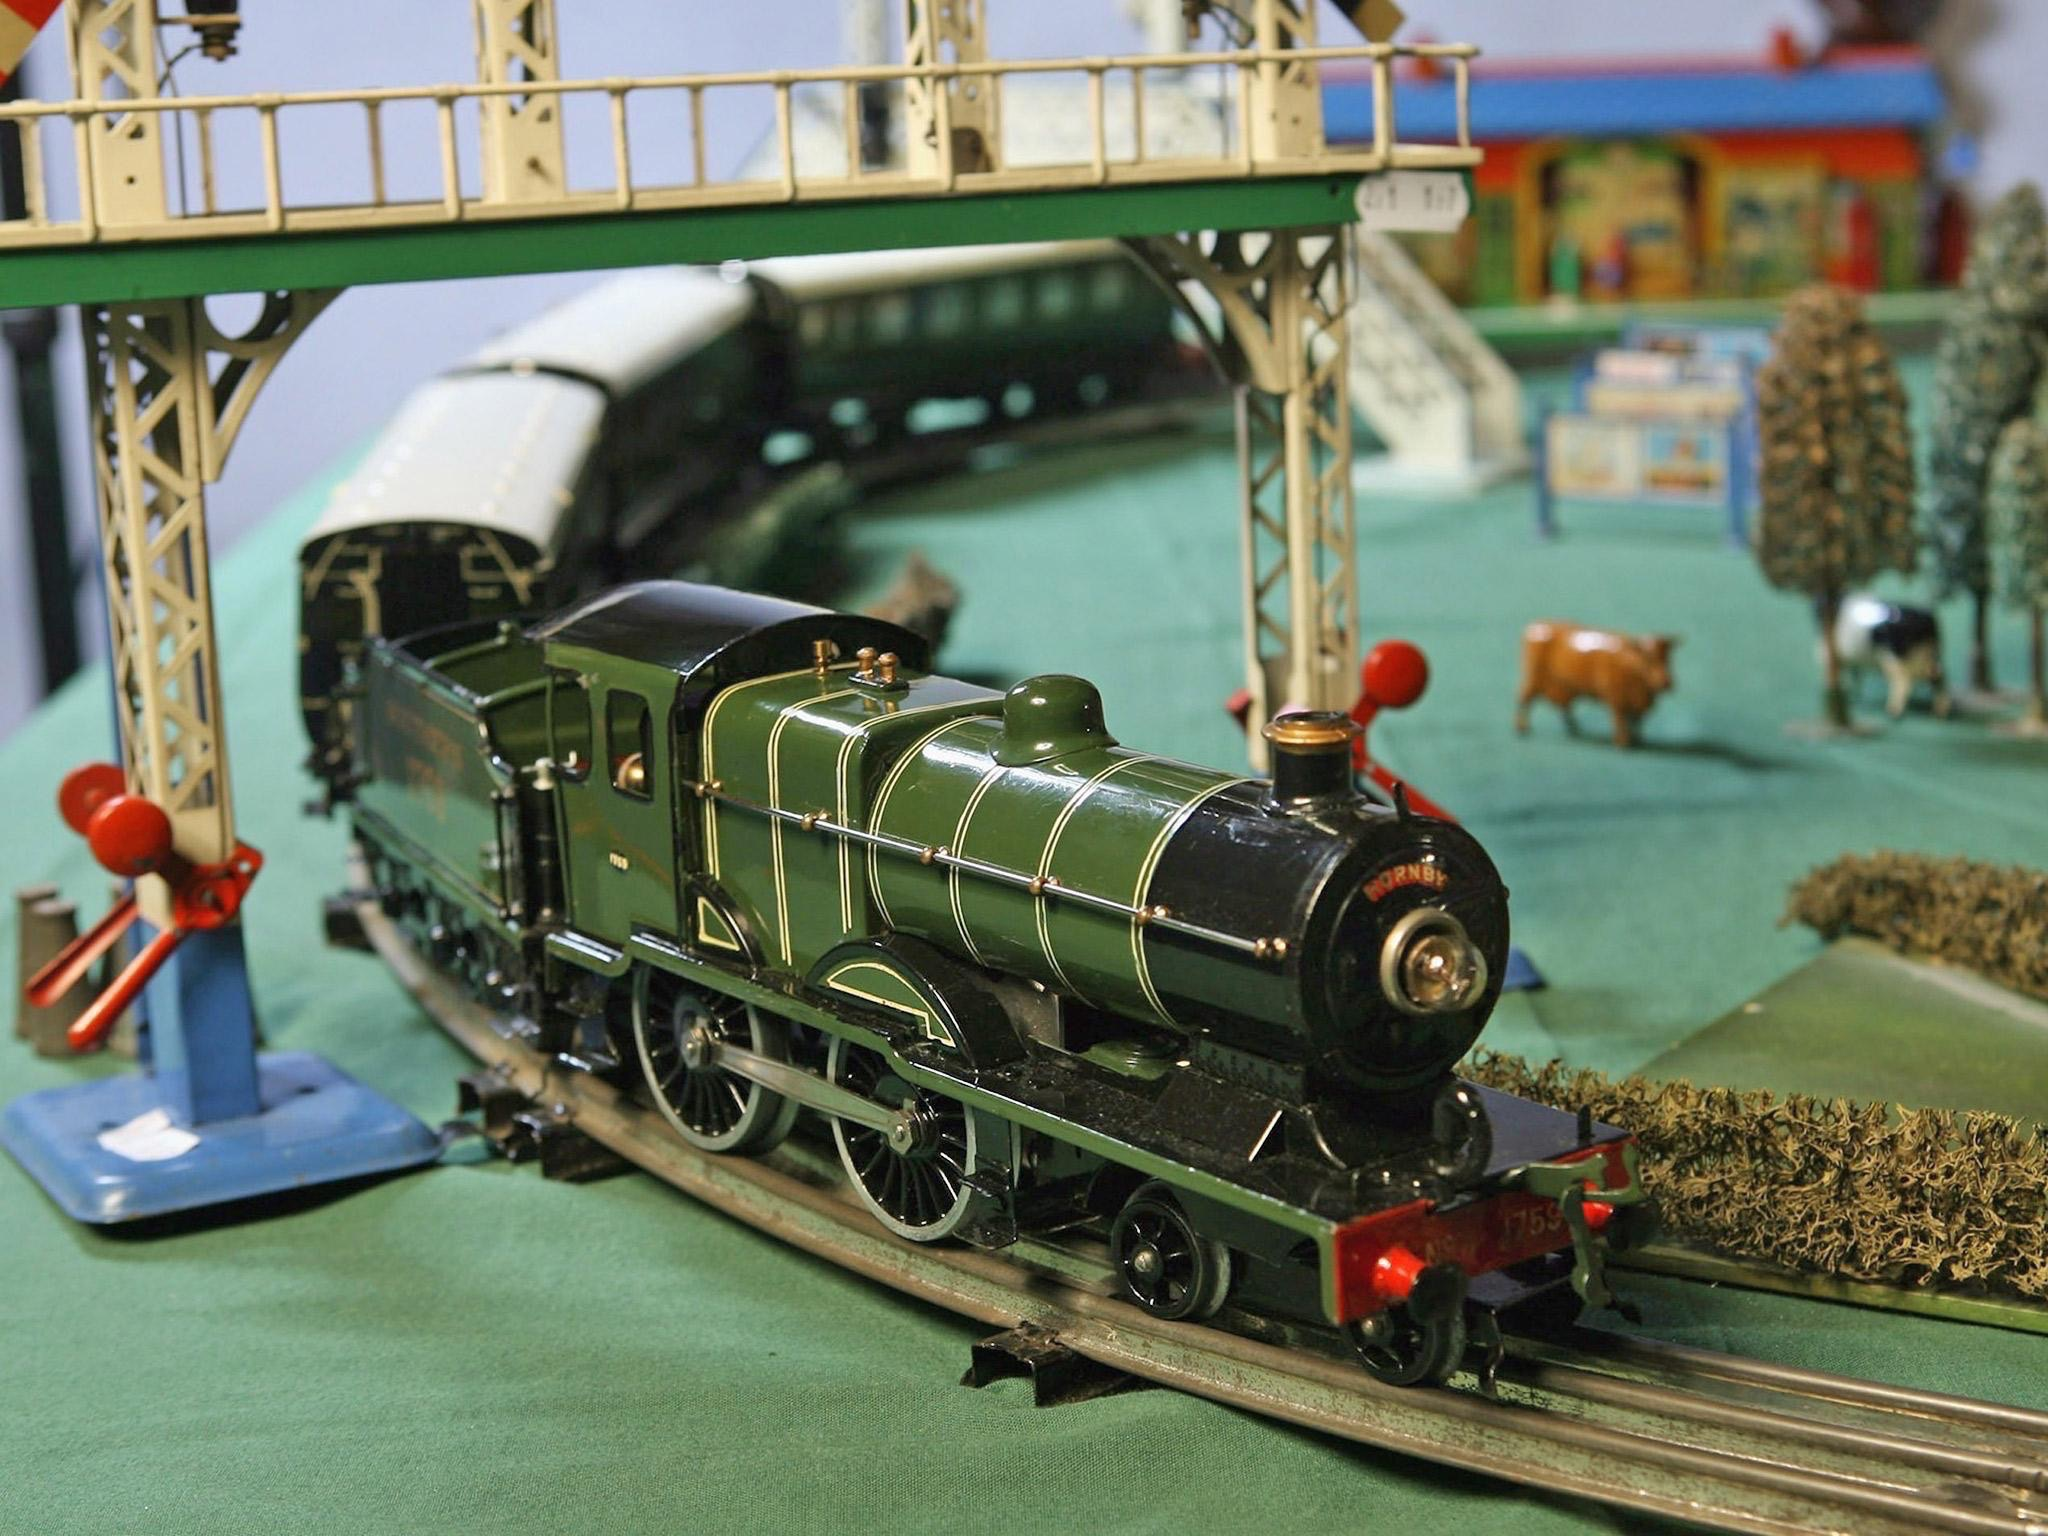 Should you buy Hornby shares? Pictured: a model train by specialist manufacturer Hornby.